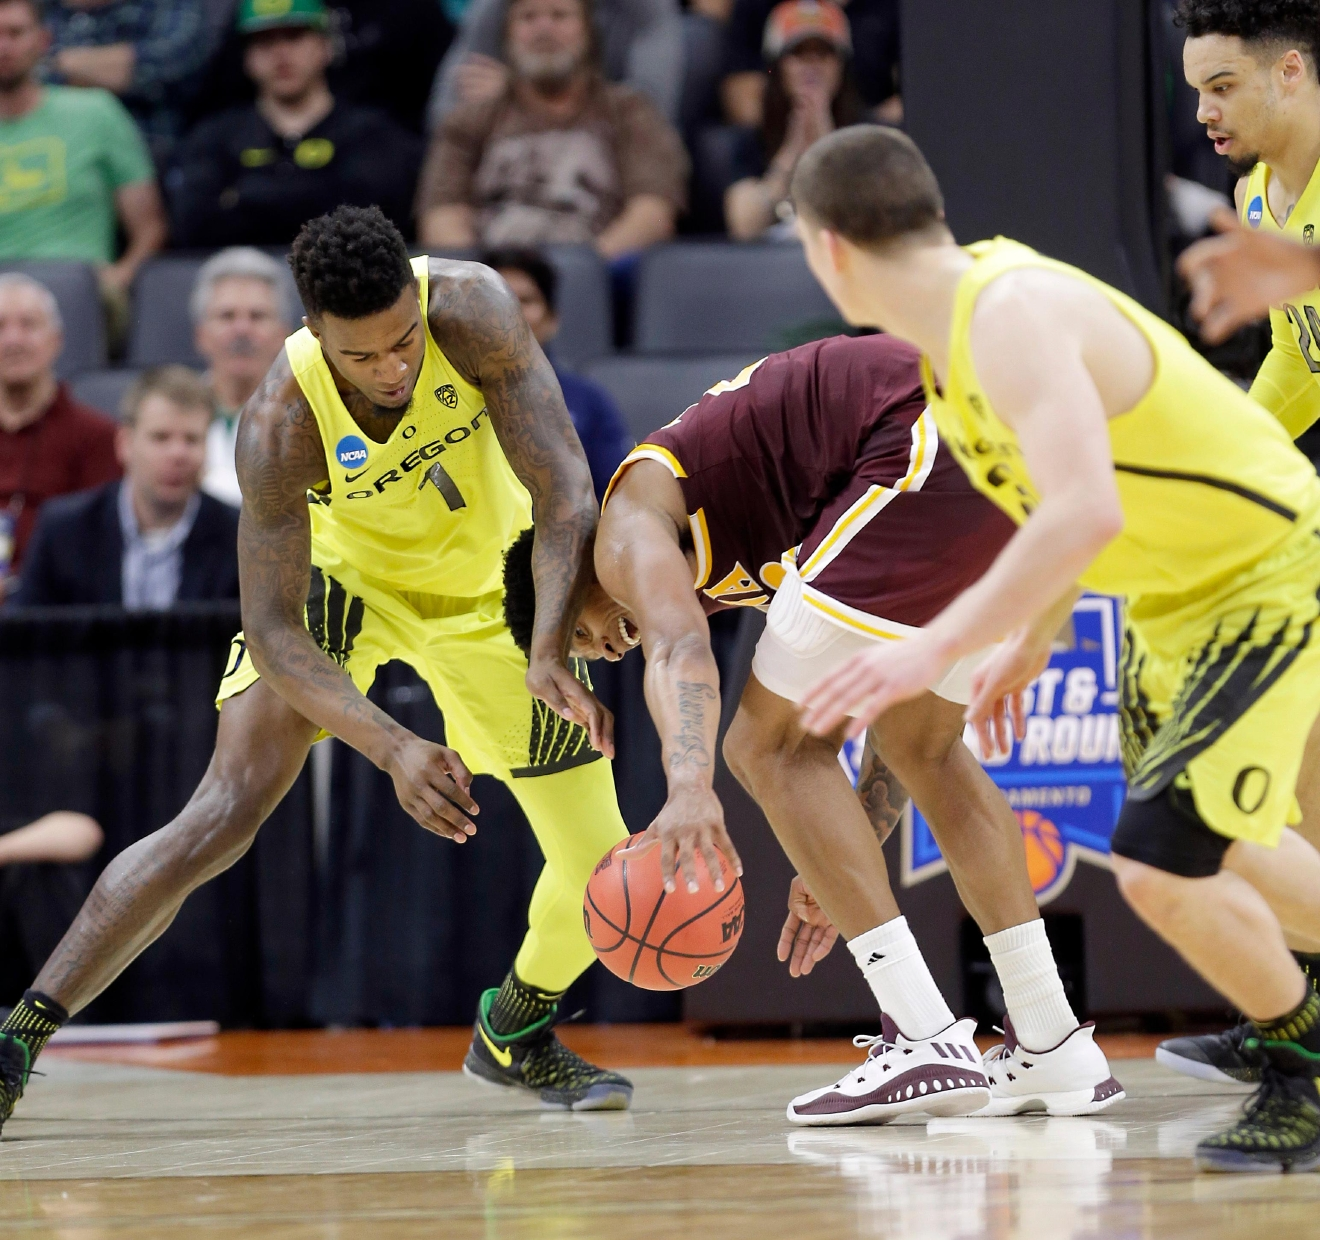 Oregon forward Jordan Bell, left, and Iona forward Jordan Washington scramble for the ball during the first half of a first-round game in the men's NCAA college basketball tournament Sacramento, Calif. Friday, March 17, 2017. (AP Photo/Rich Pedroncelli)